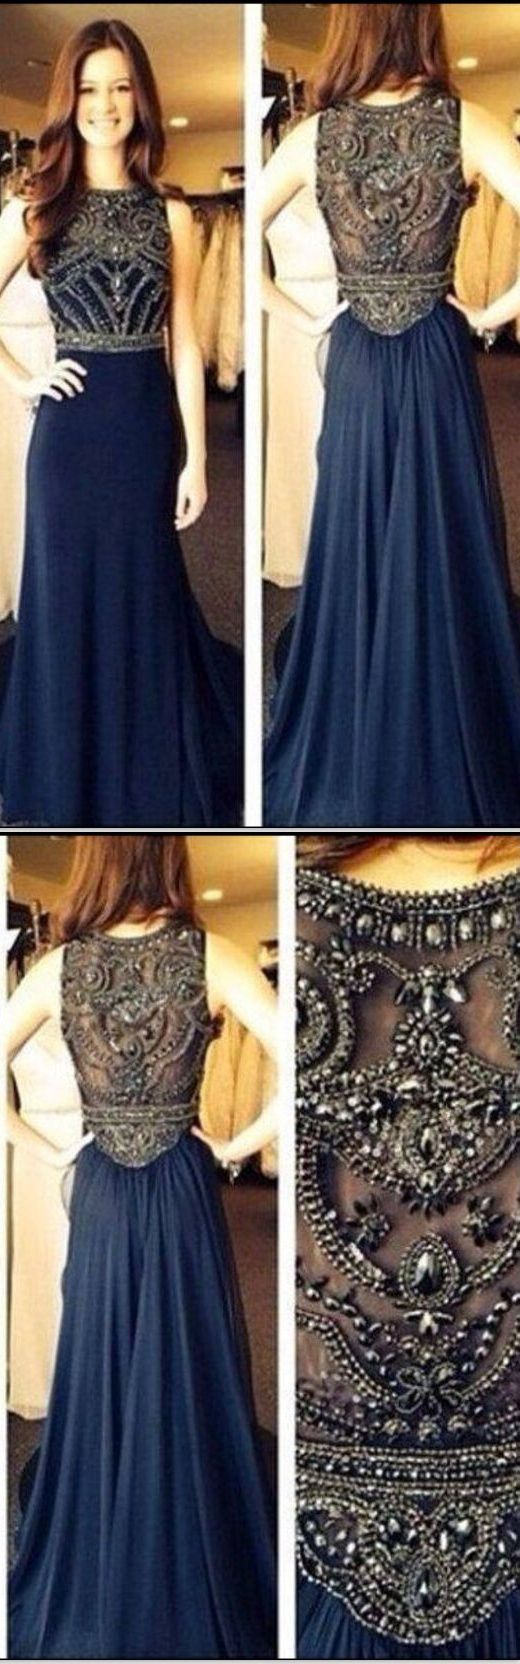 best long prom dresses images on pinterest long prom dresses